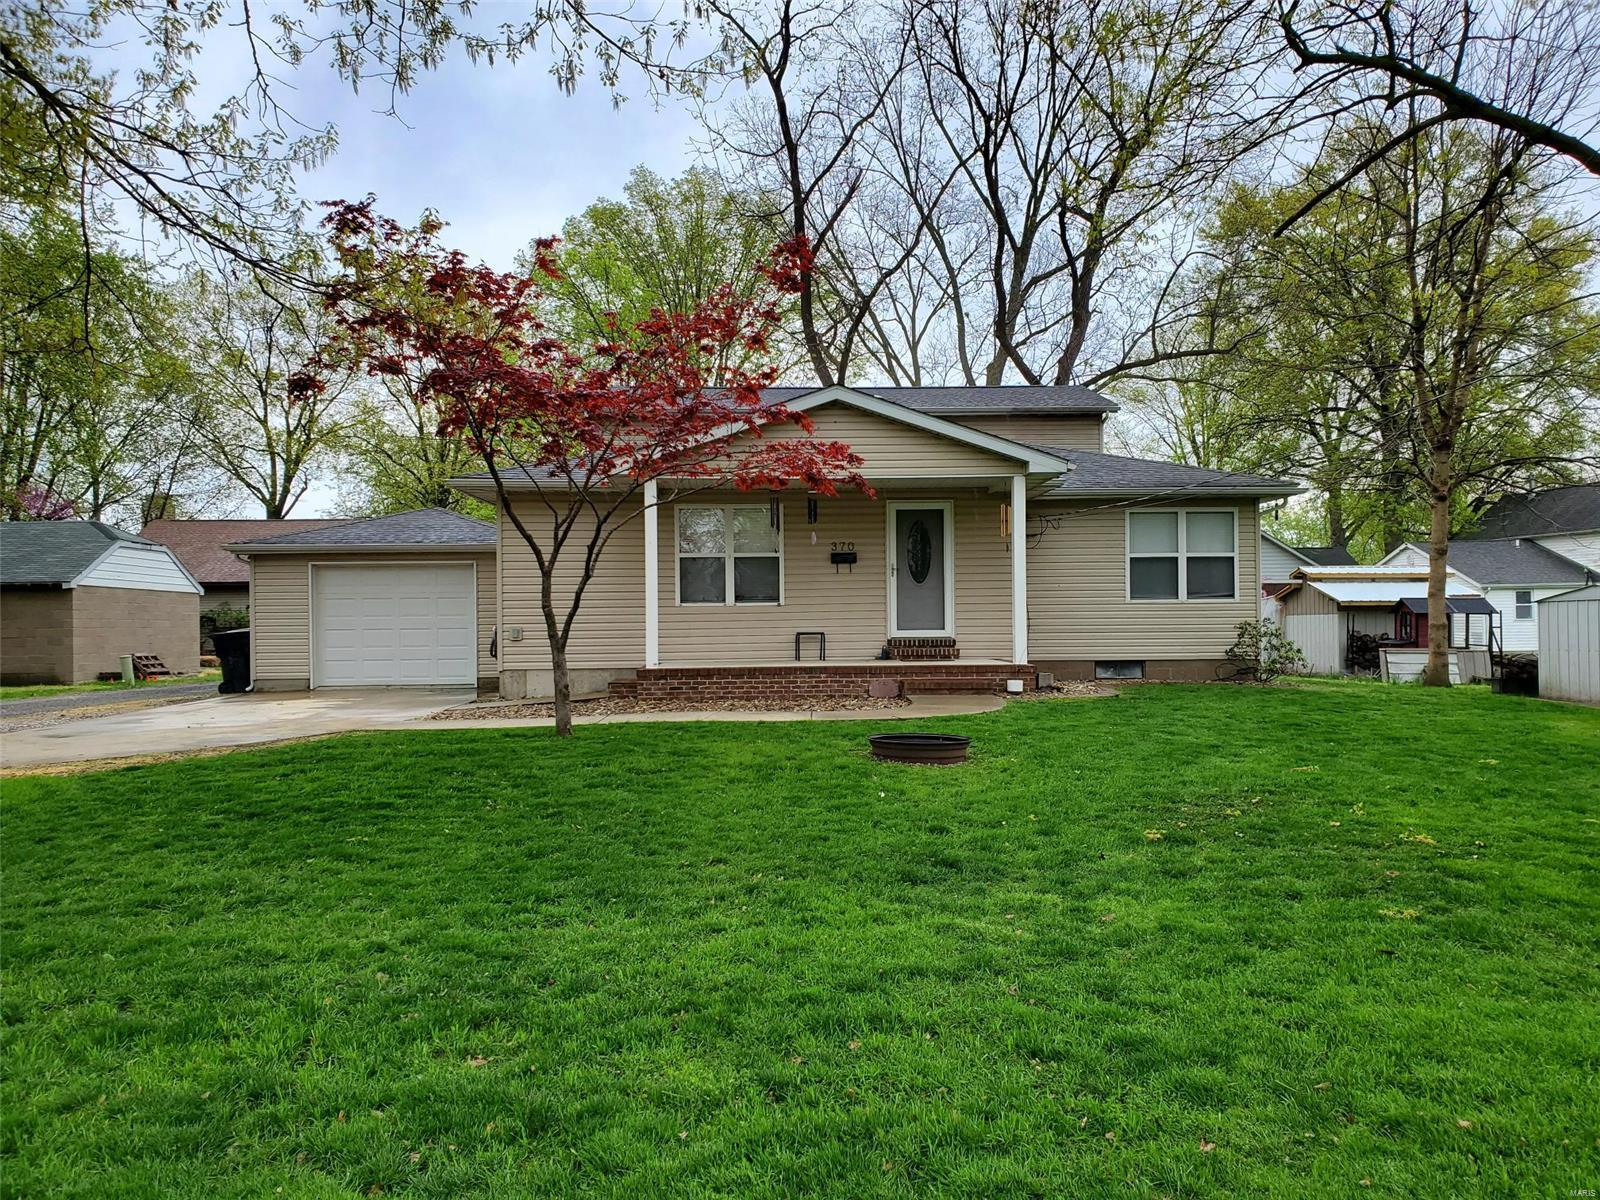 370 S Cherry Street Property Photo - Breese, IL real estate listing